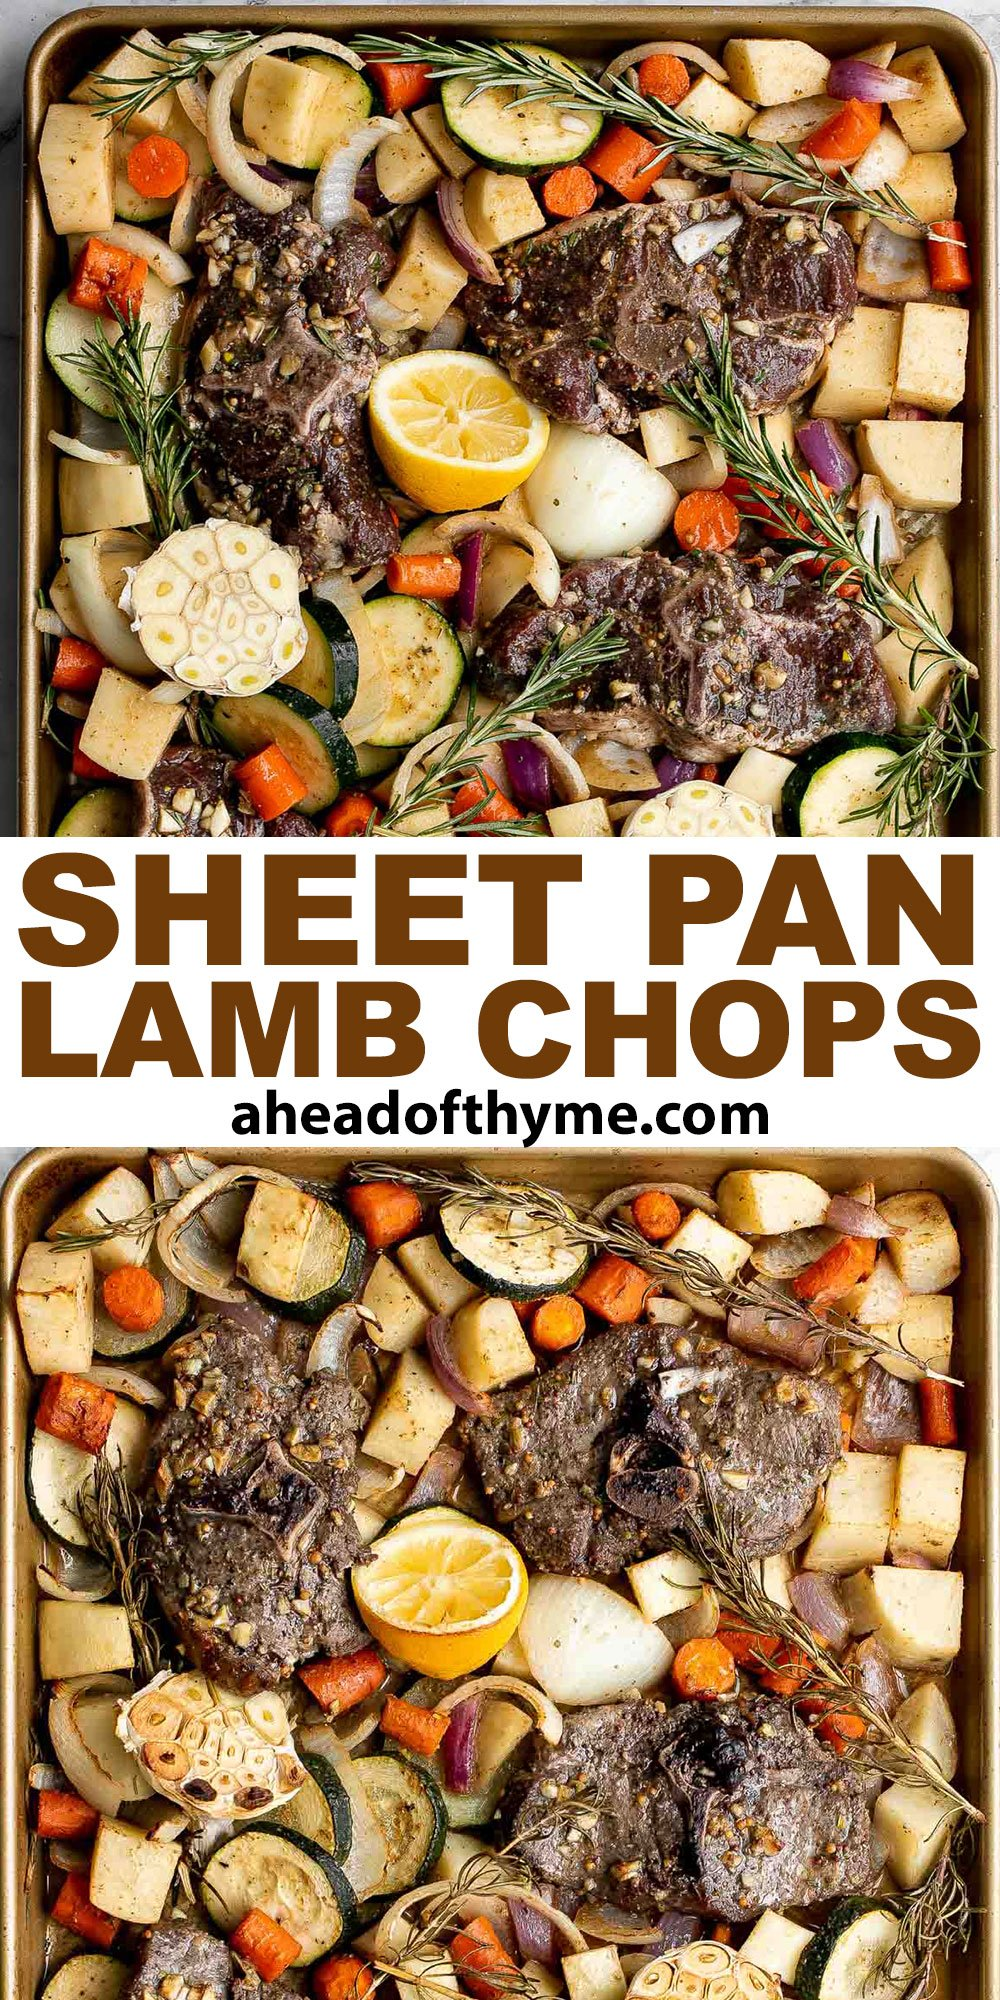 Sheet Pan Lamb Chops